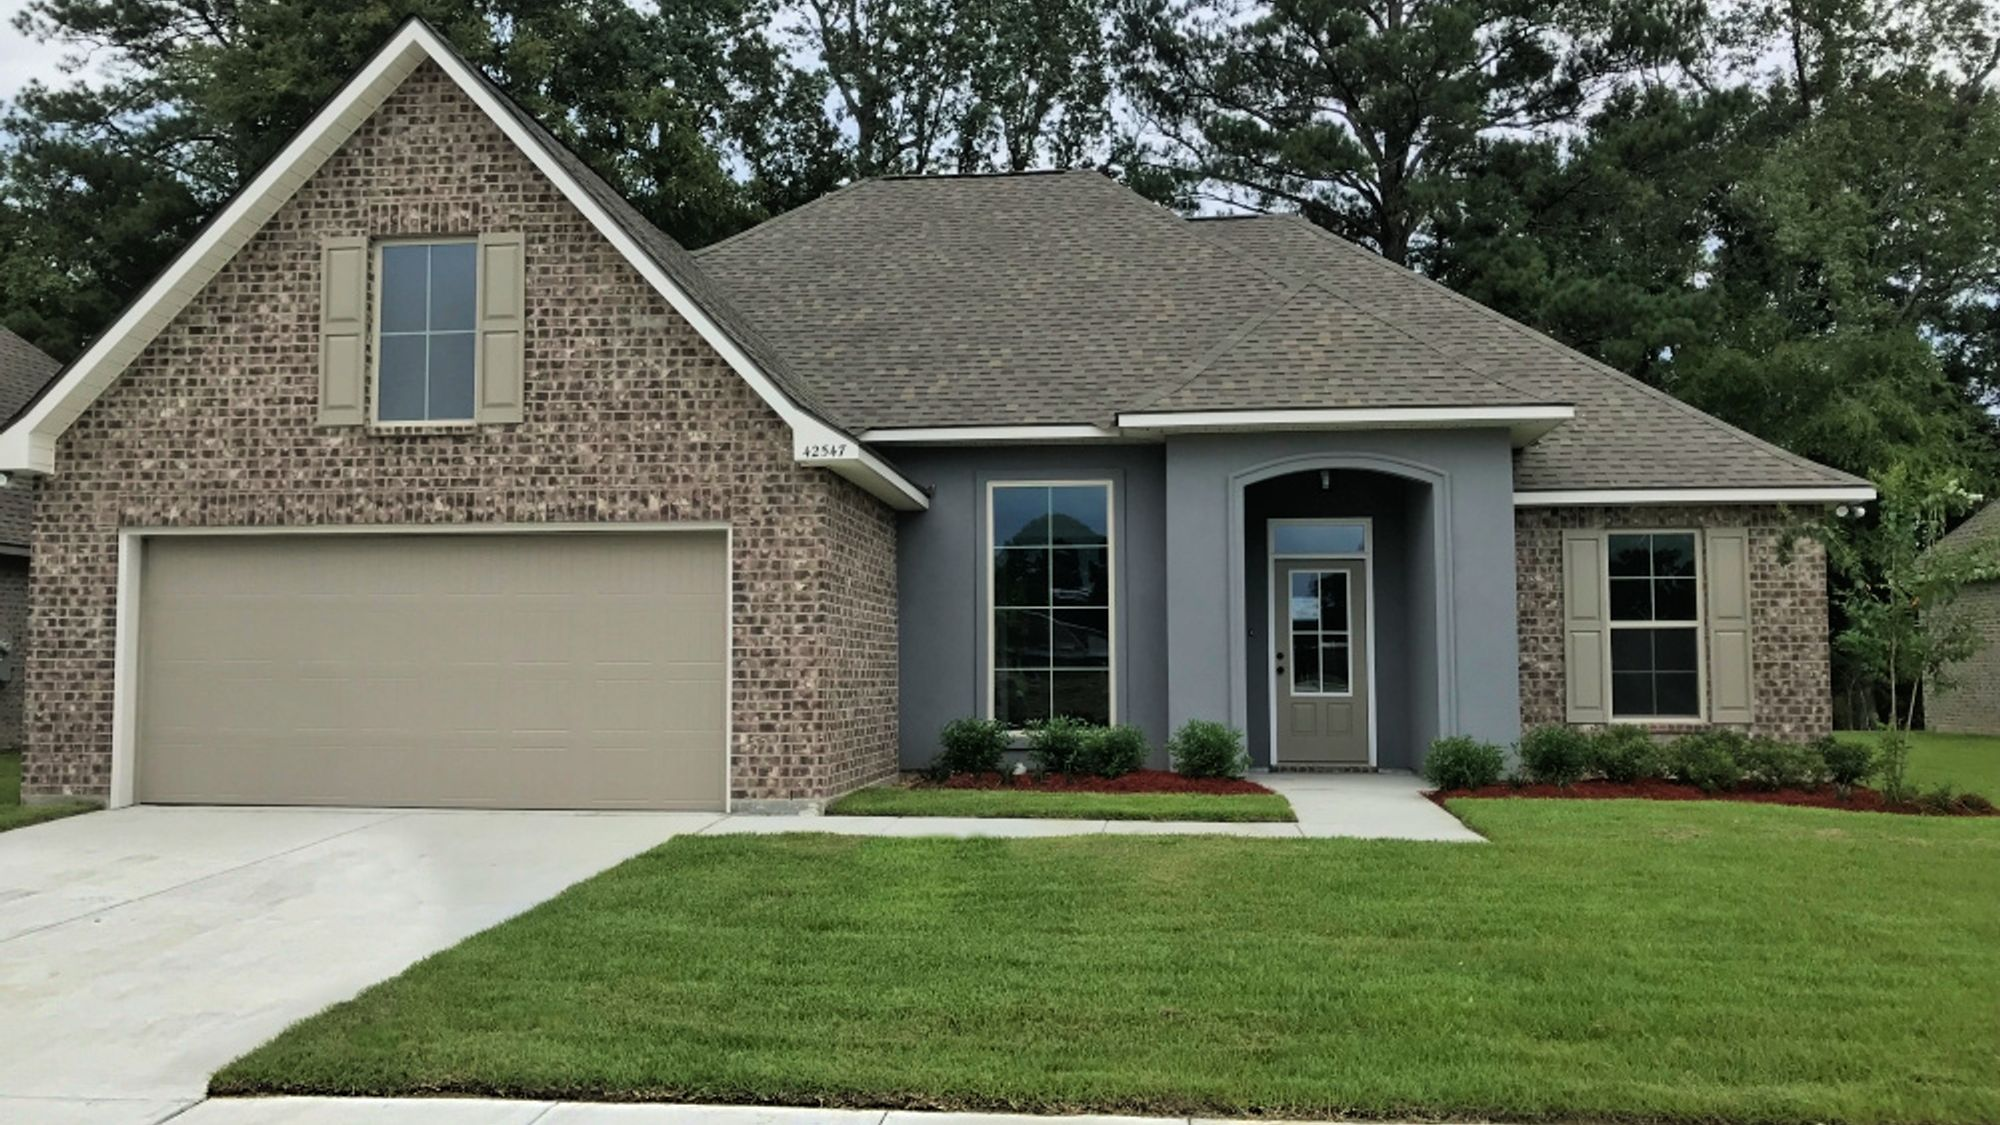 Front View - Cedar Springs Community - DSLD Homes - Gonzales